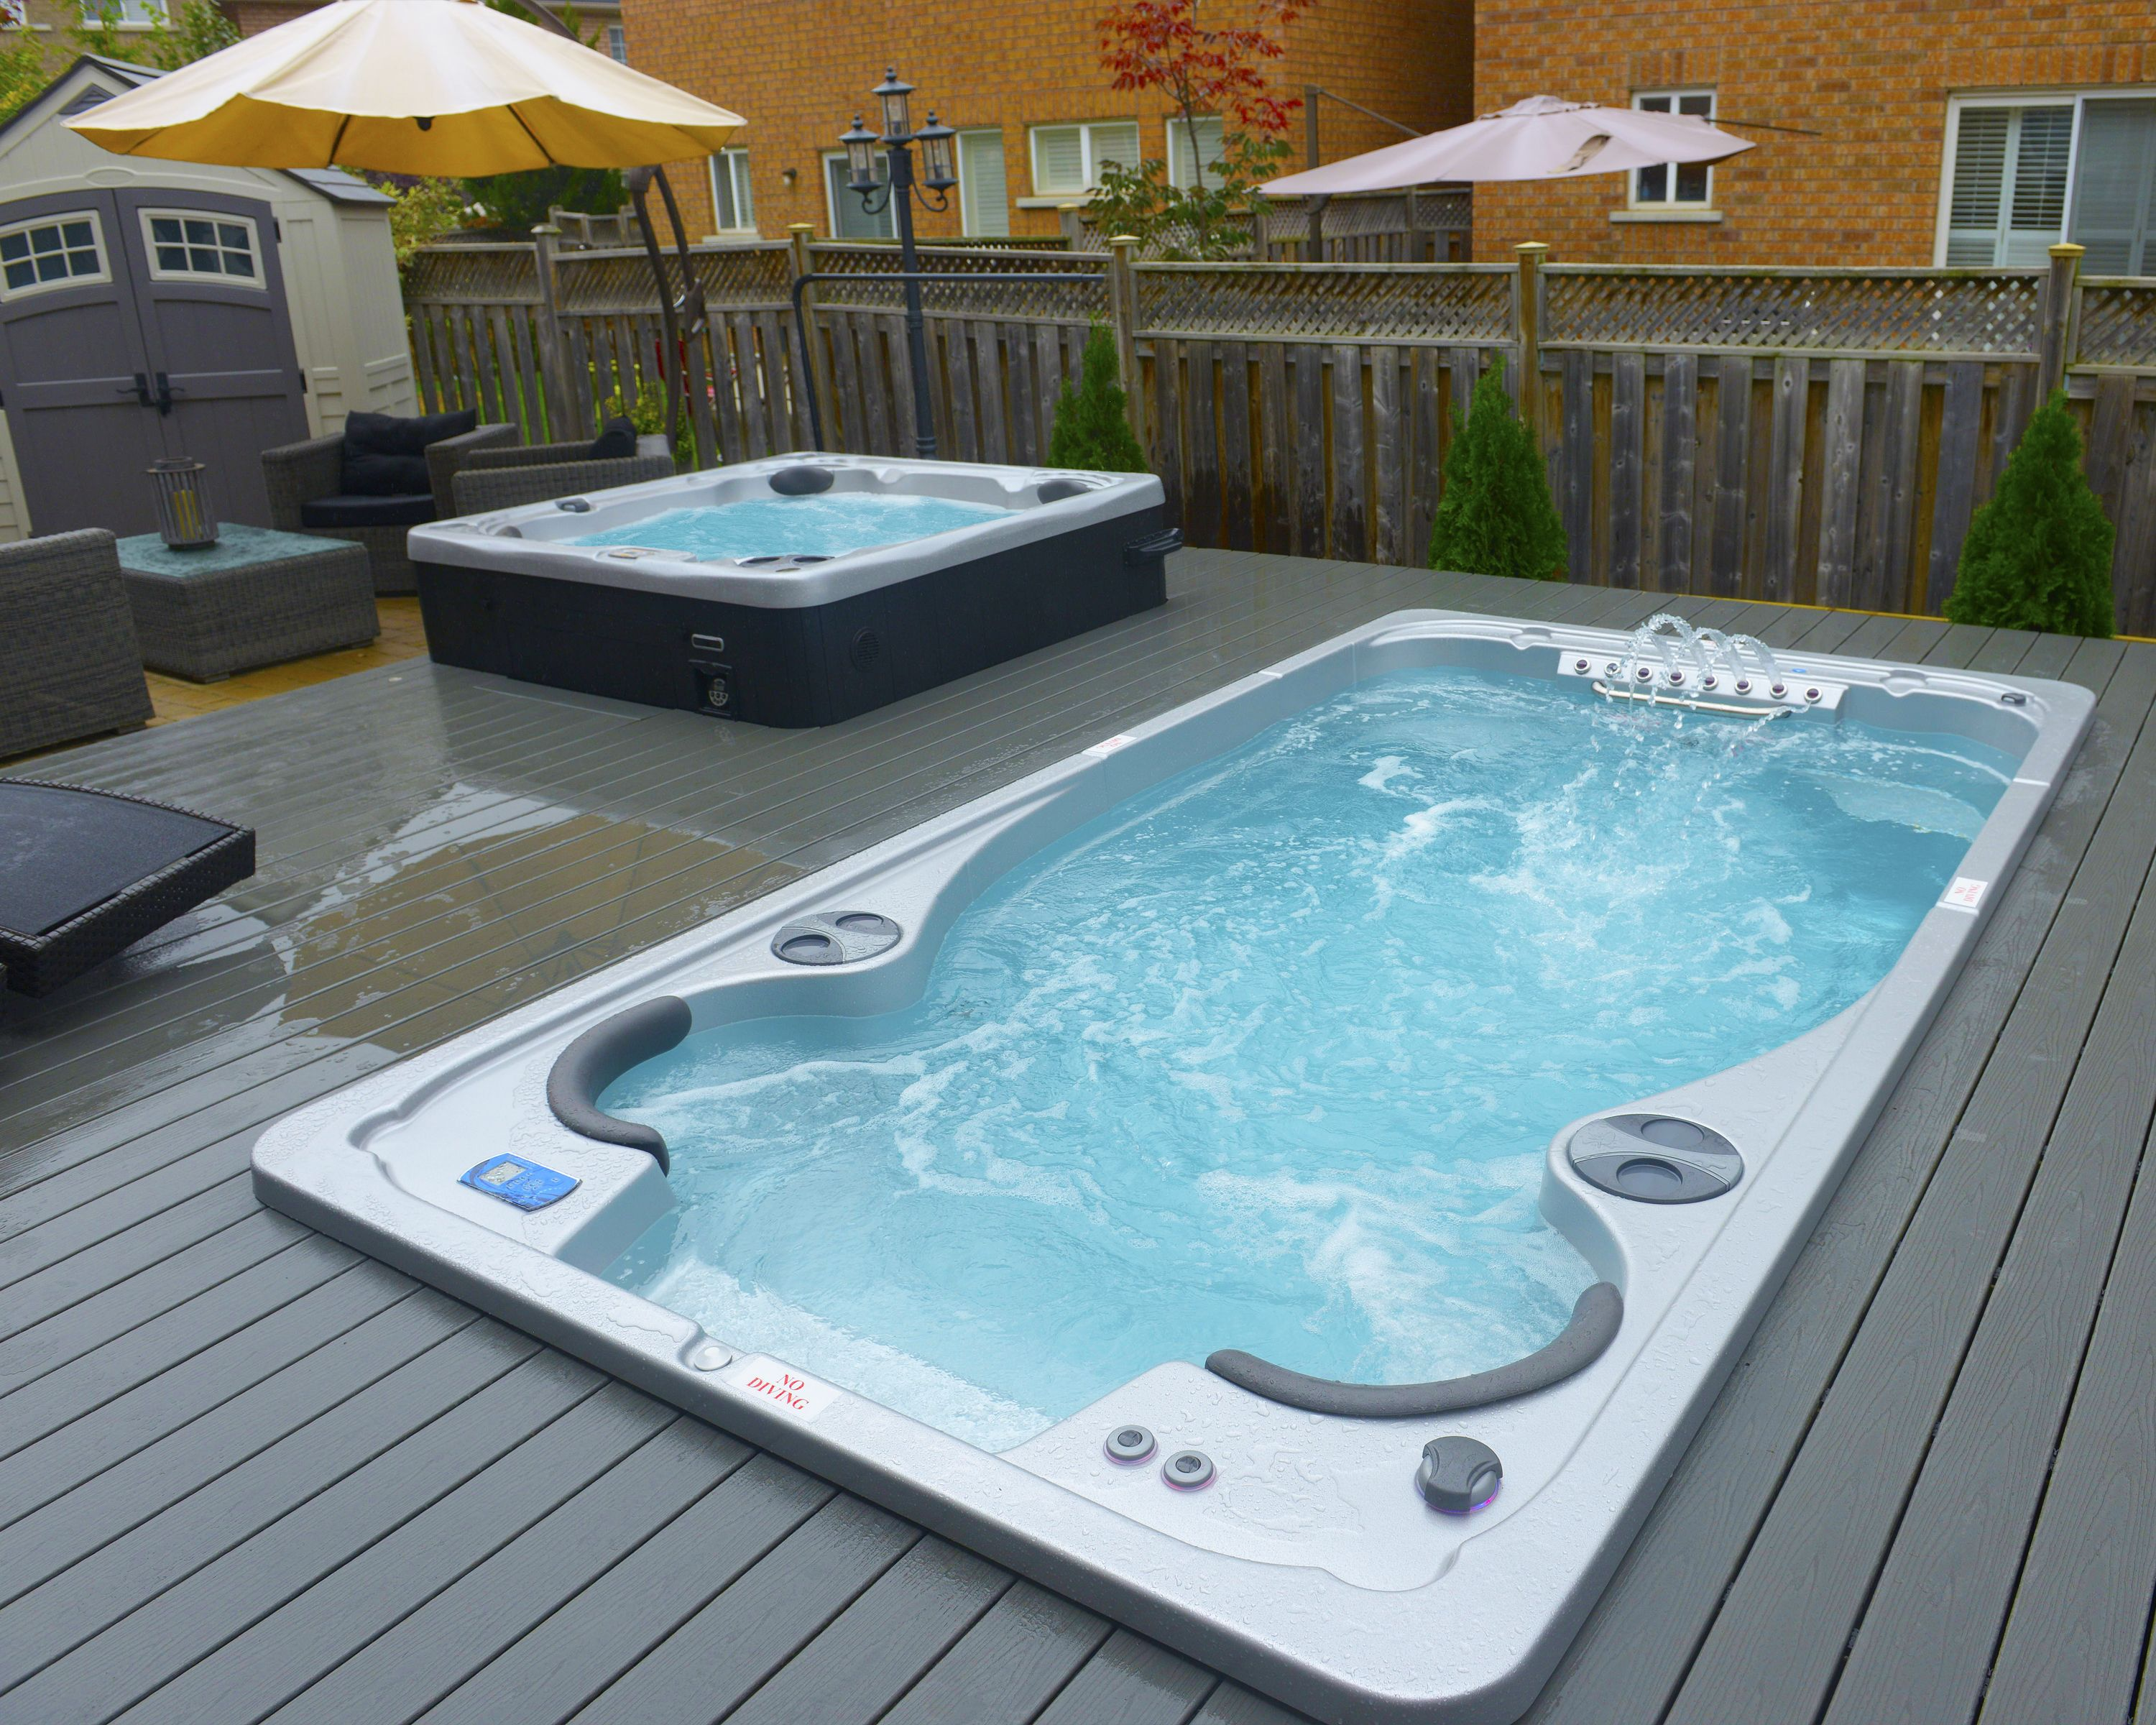 Jacuzzi Pool Installation Hydropool Self Cleaning Swim Spa And Hot Tub Installed Into A